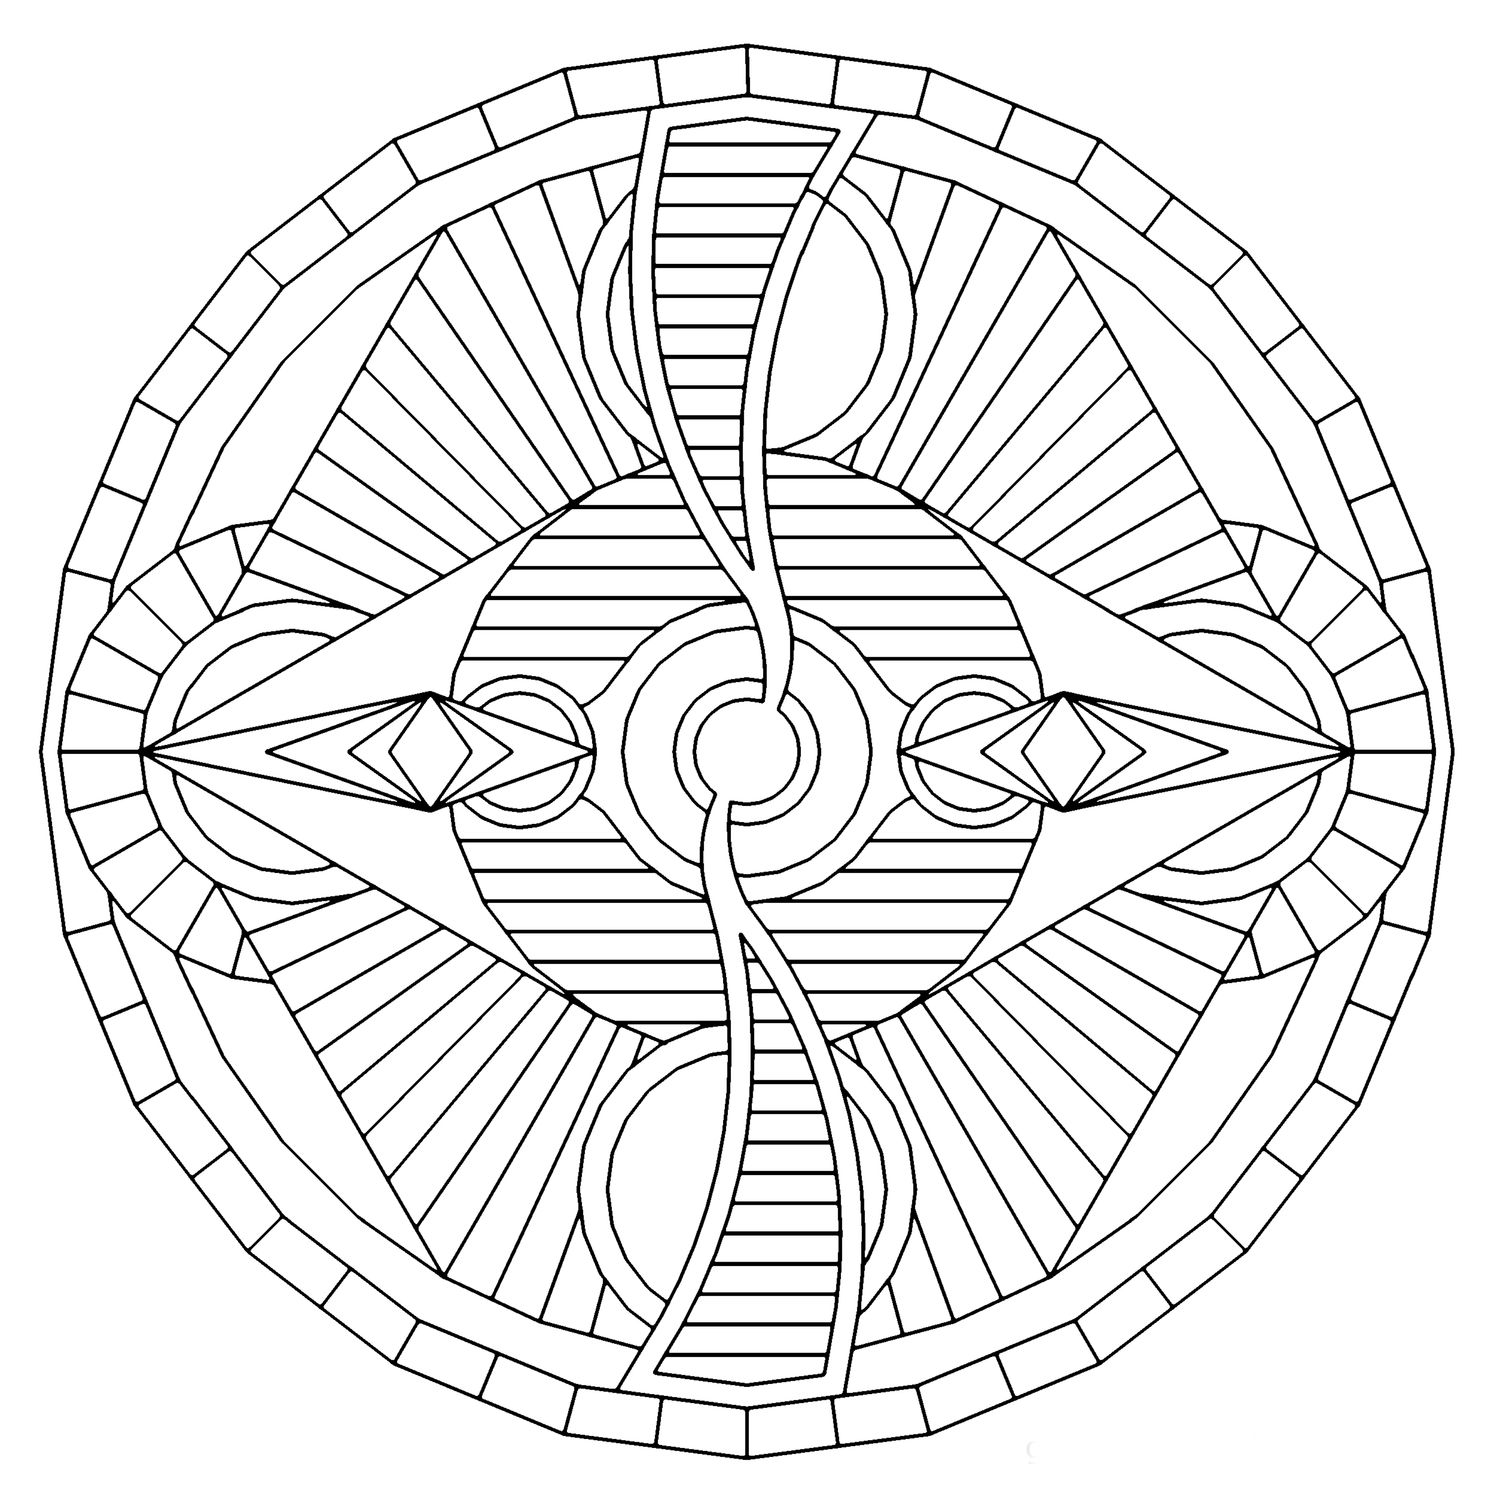 Hexdial_mandala_coloring_pages.jpg | Coloring - Geometrical Designs ...